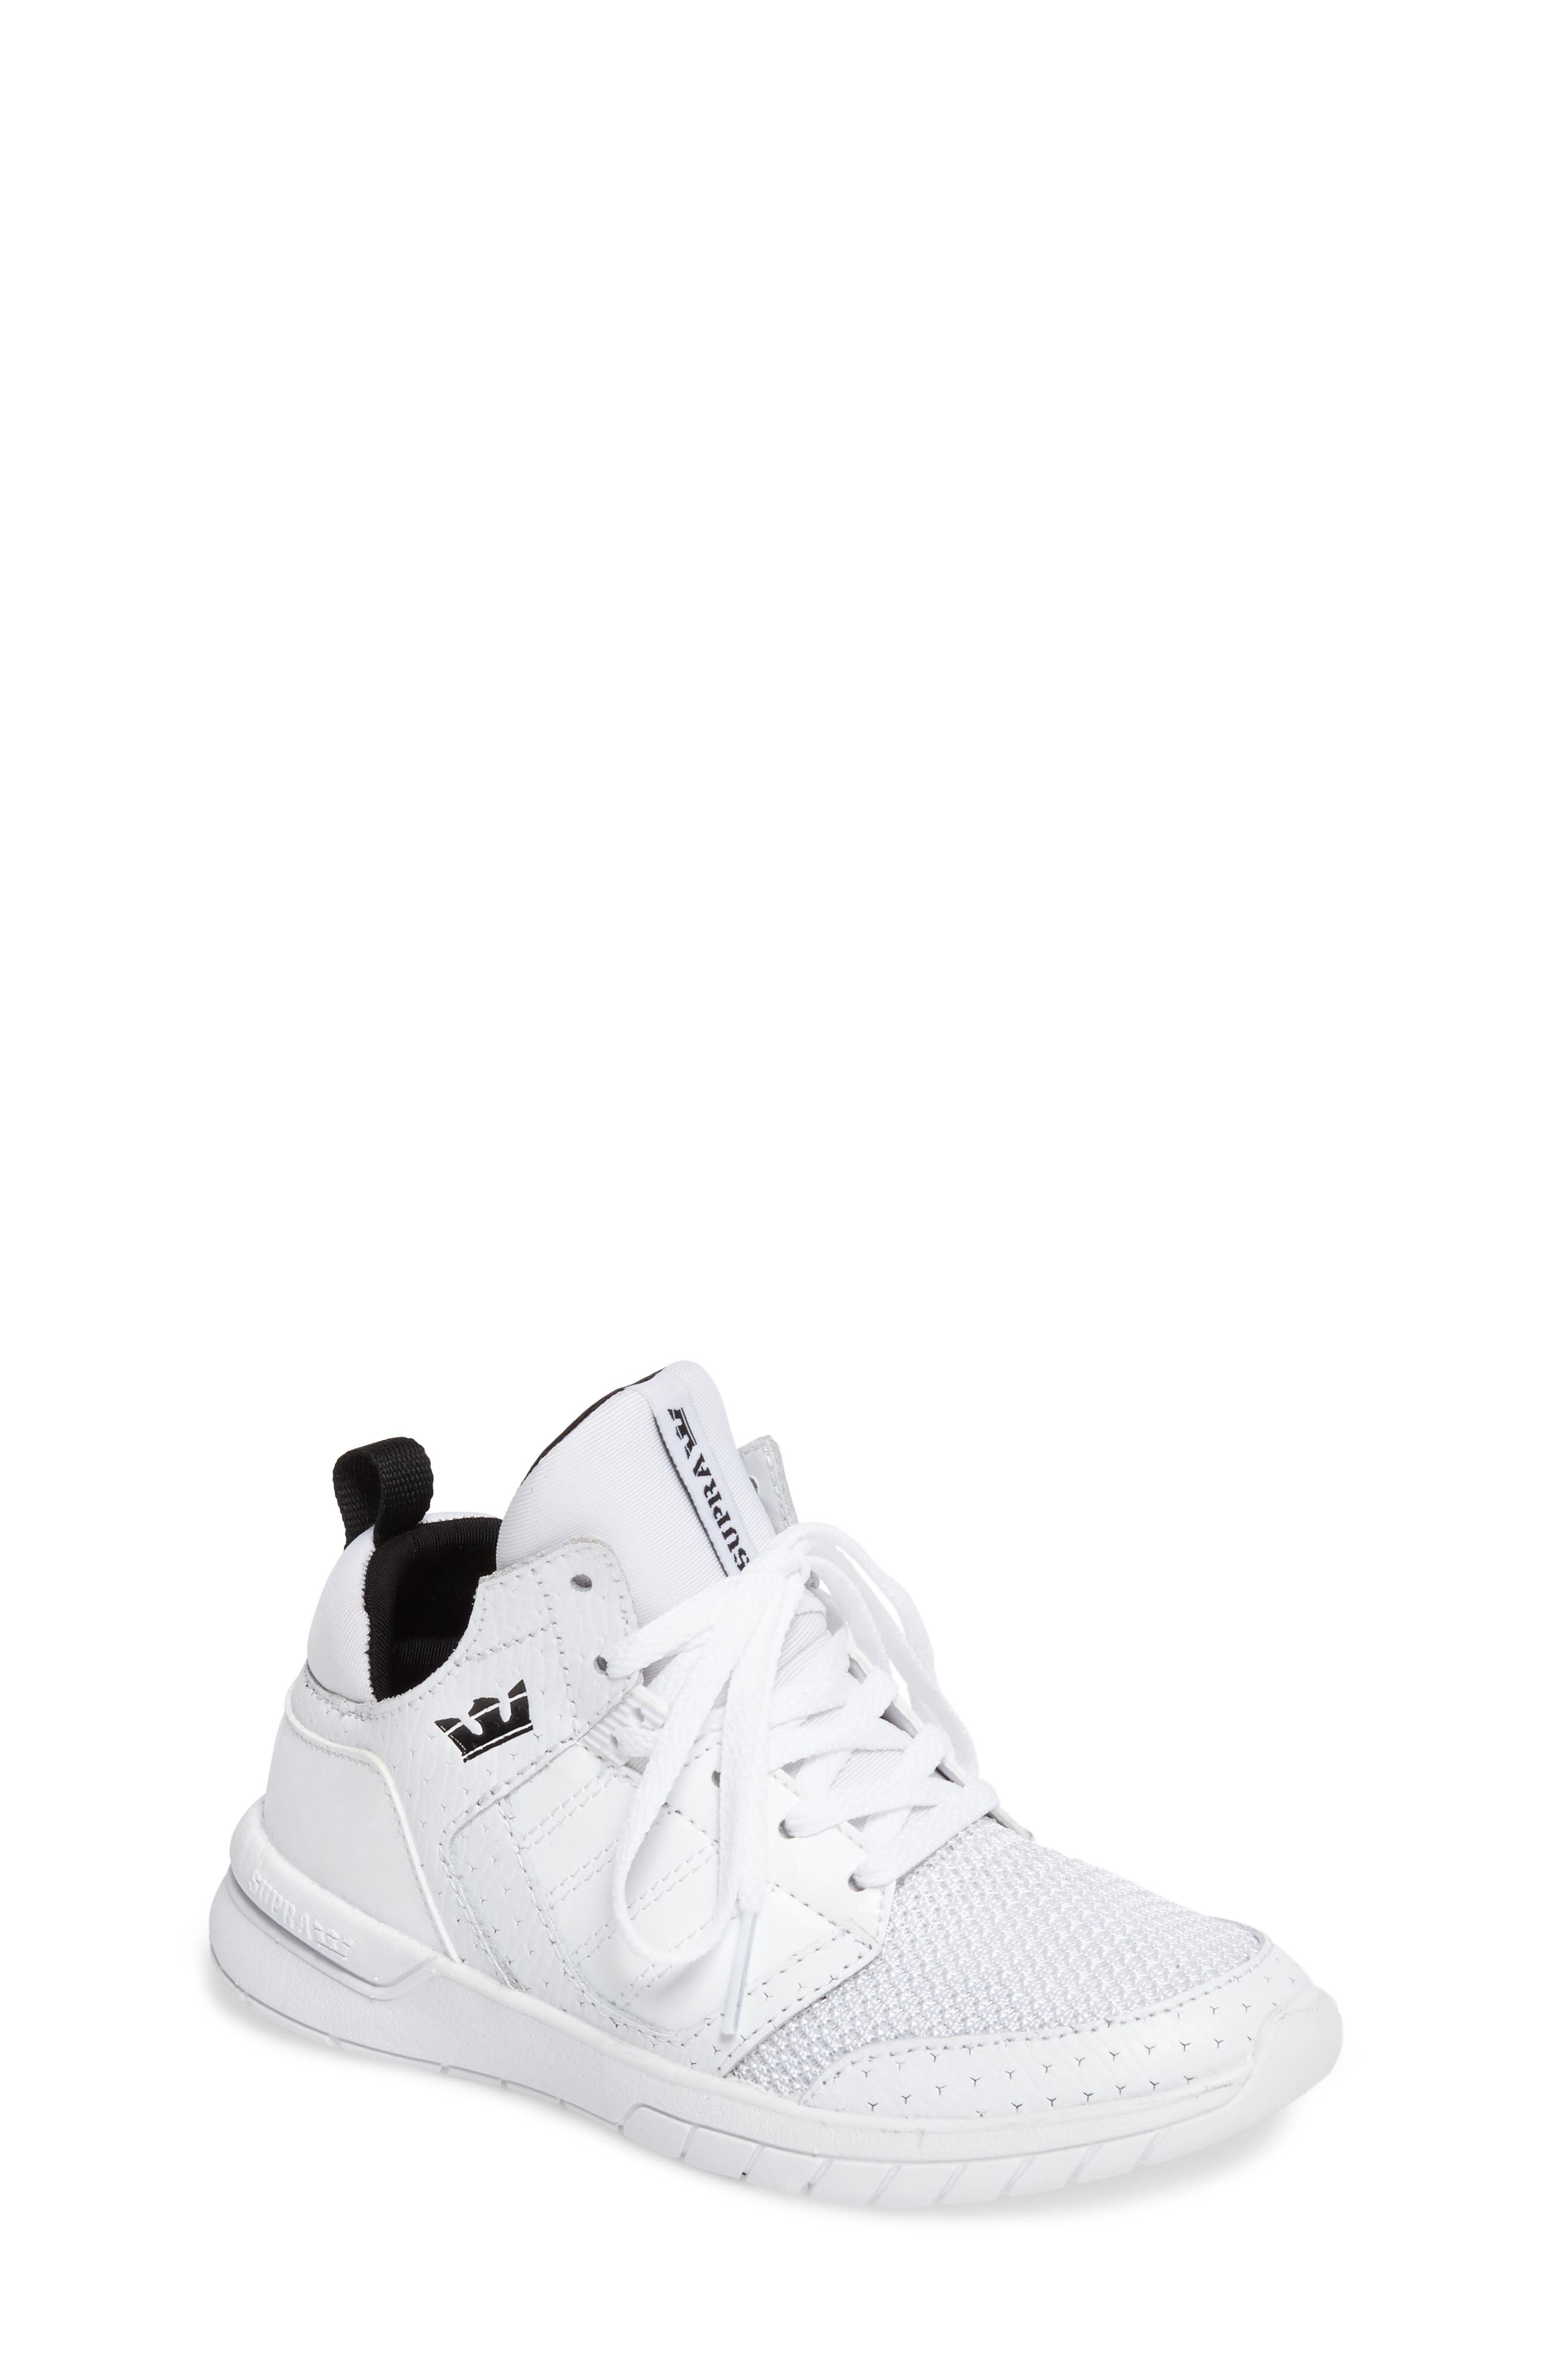 Main Image - Supra Method Sneaker (Toddler & Little Kid)